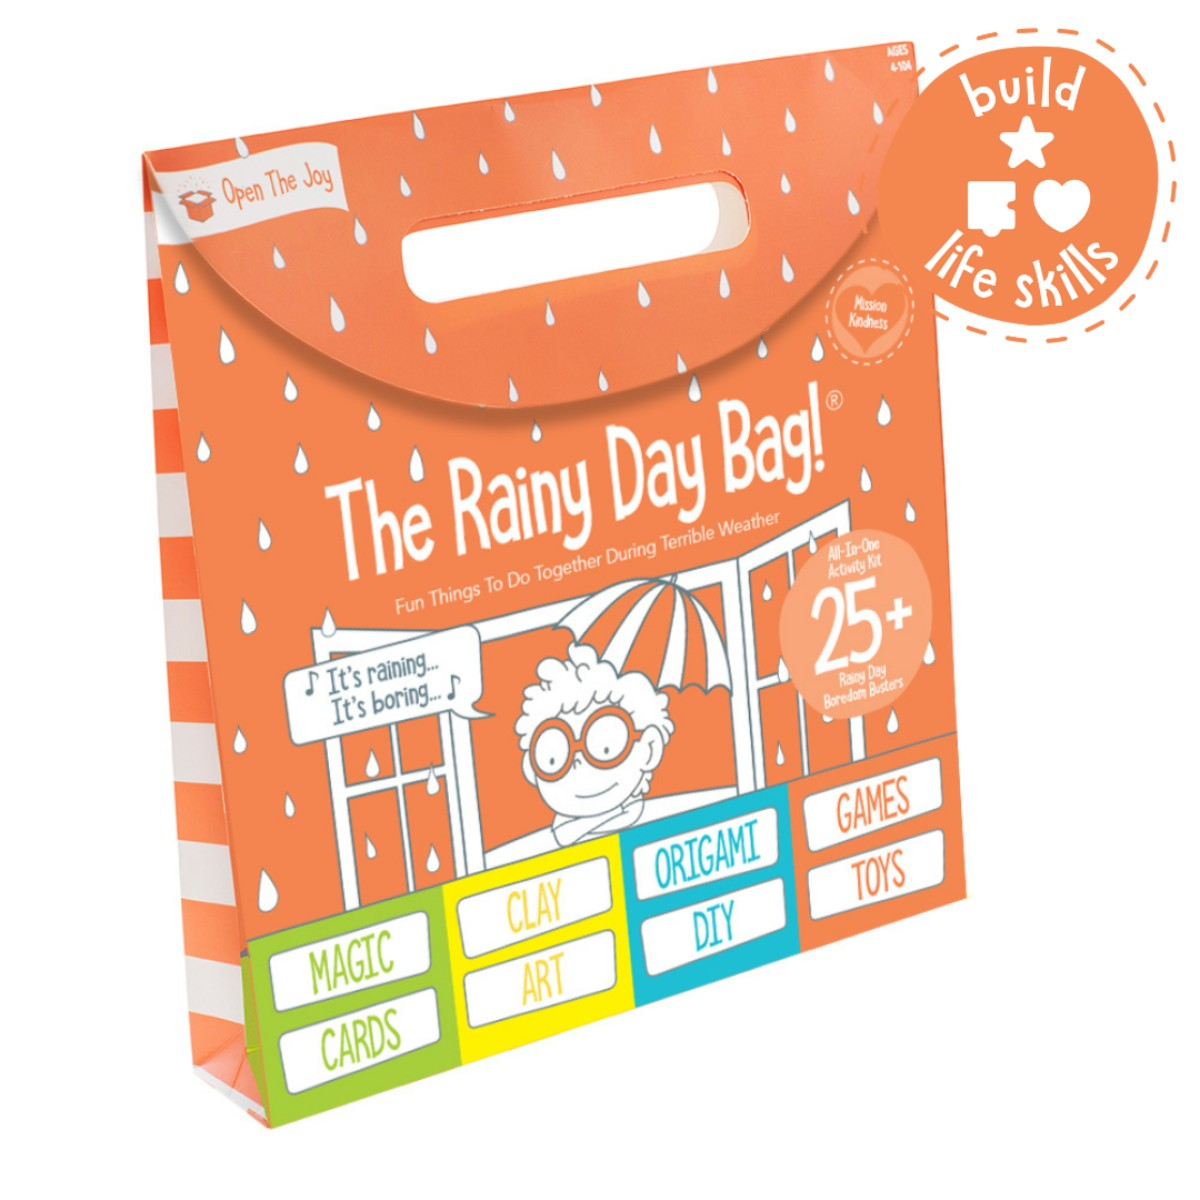 Rainy Day Bag: All-in-One Activity Kit